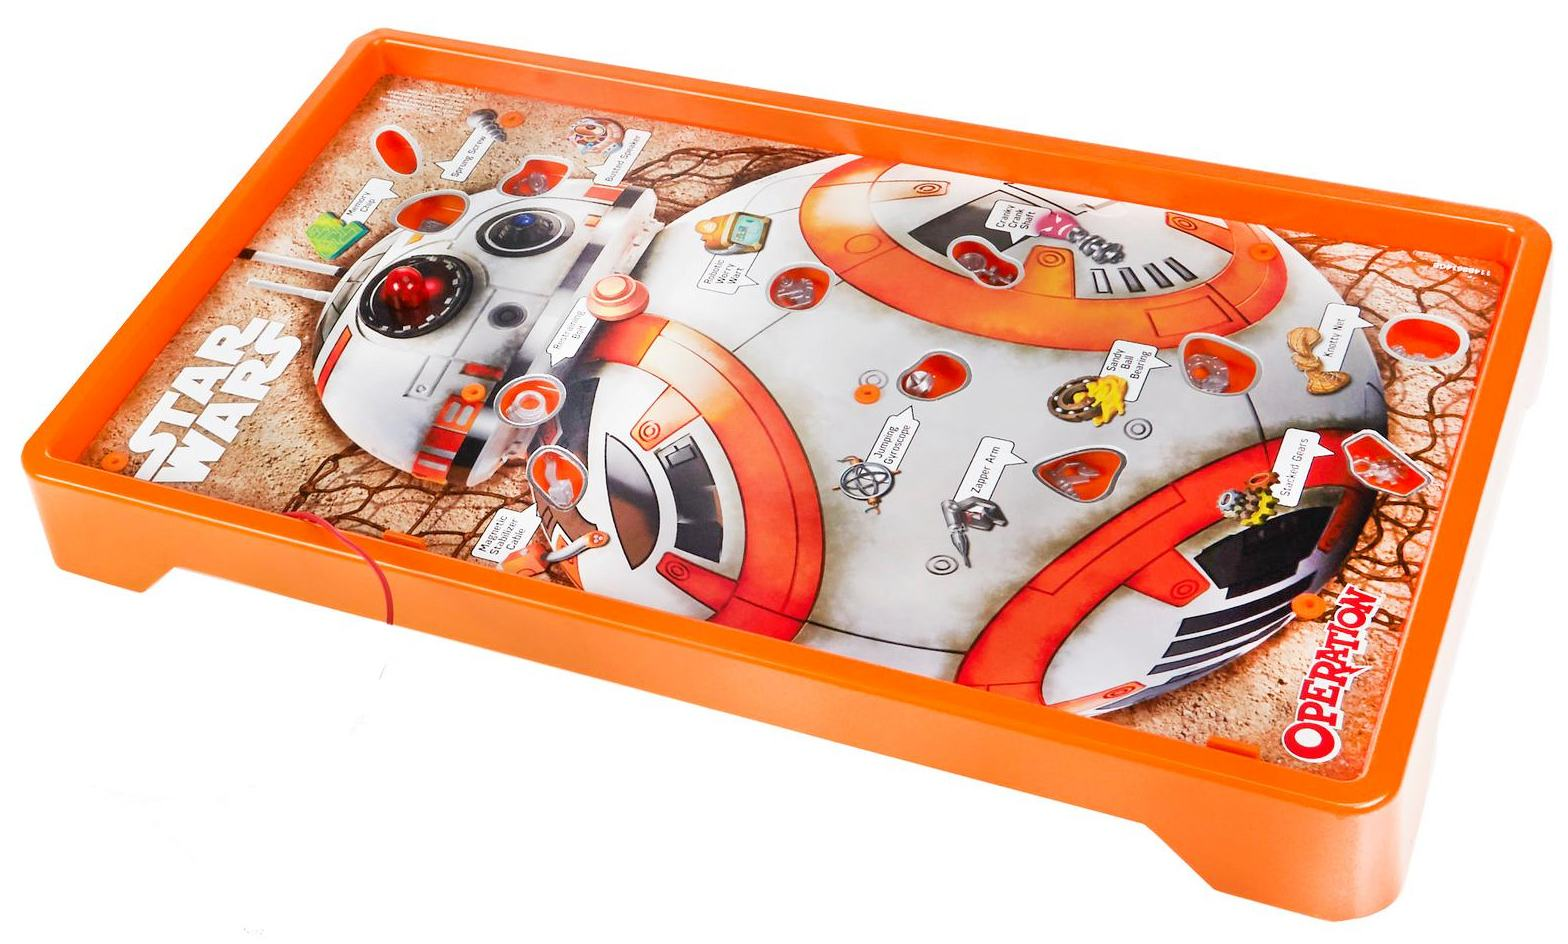 jogo-operacao-star-wars-bb-8-edition-operation-game-02